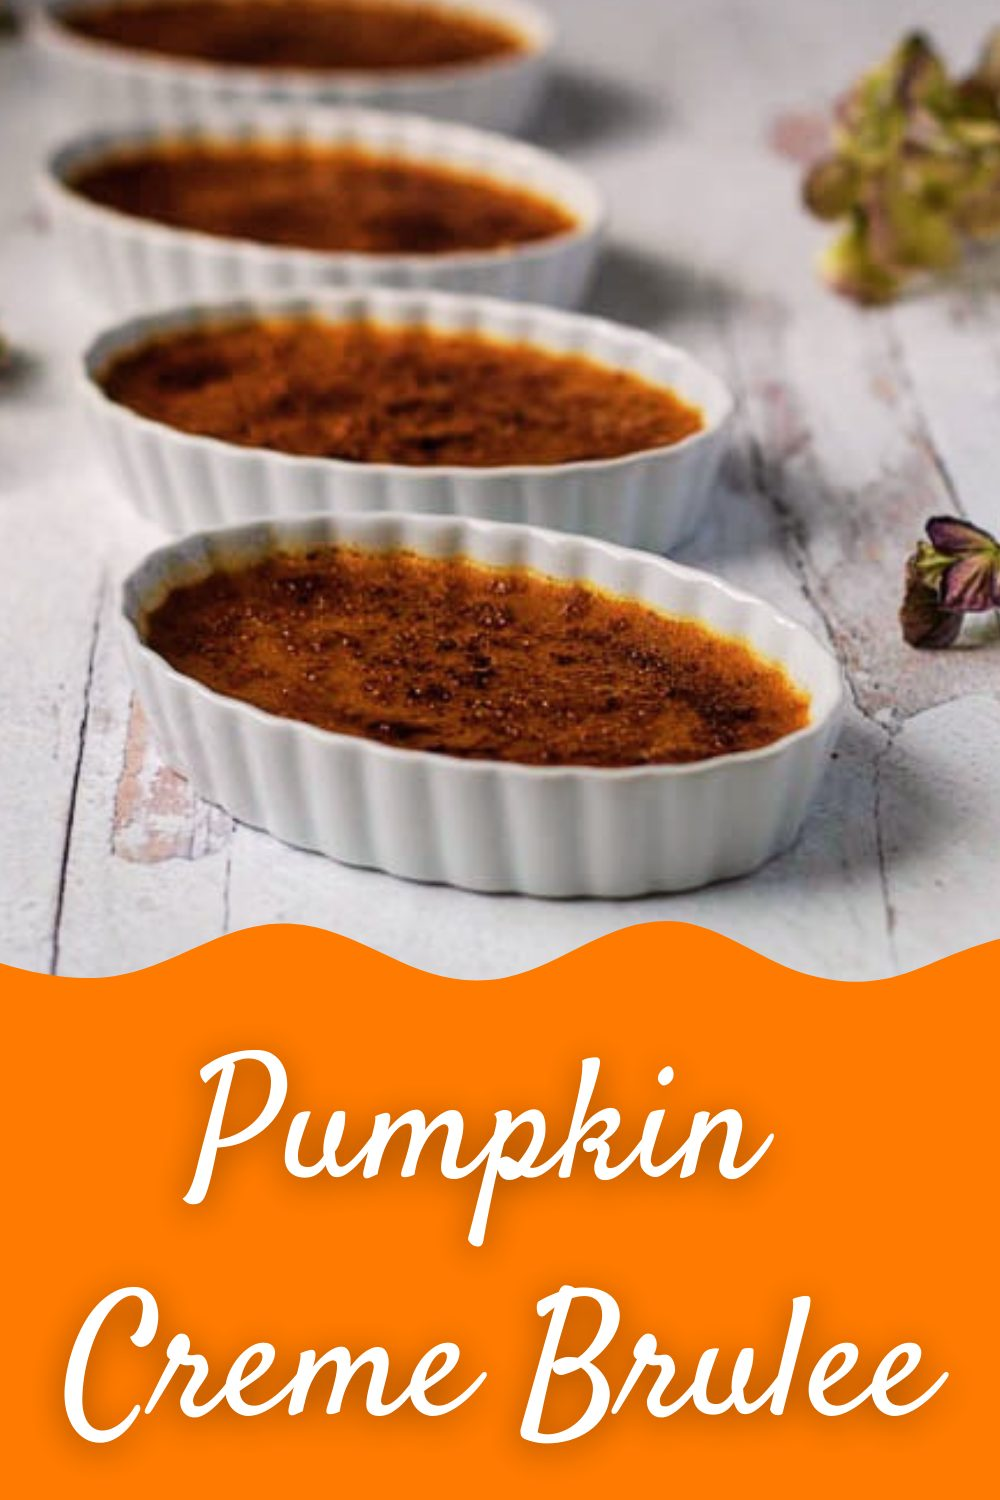 This Pumpkin Creme Brulee makes an easy and effortless fall dessert that is loaded with luscious pumpkin flavor and unique spice blend. Head to our site for full recipe and tips! #pumpkincremebrulee #dessertrecipes #fallrecipes #desserts #homemade #nymelrosefamily via @jennymelrose